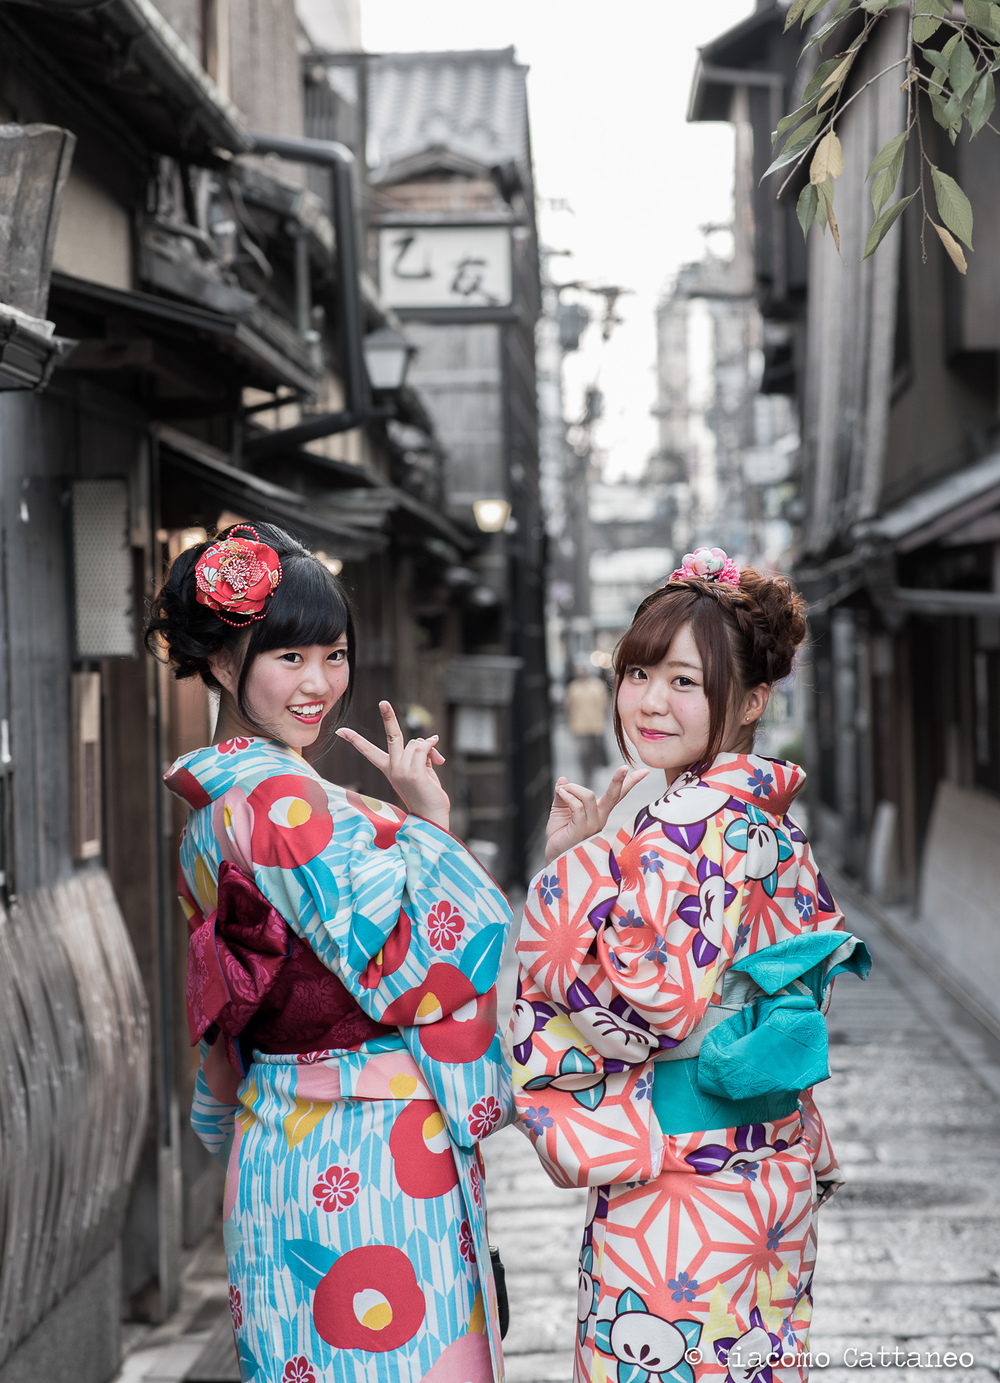 ISO 400, 85mm, f/4.0, 1/60 sec - Kyoto. My favourite tourists! It's customary for Japanese girls who visit Kyoto to take out their brightest kimonos and stroll the streets in such a fashion. So they first asked me if I could take a picture of them, and then asked them if I could do the same with my camera. Picture-wise, shooting with an 85mm is such a joy for portraits, as the foreground and background collapse much closer, and the effect on people's features is much more flattering. I also unsaturated the background, so to have their kimonos stand out even more.